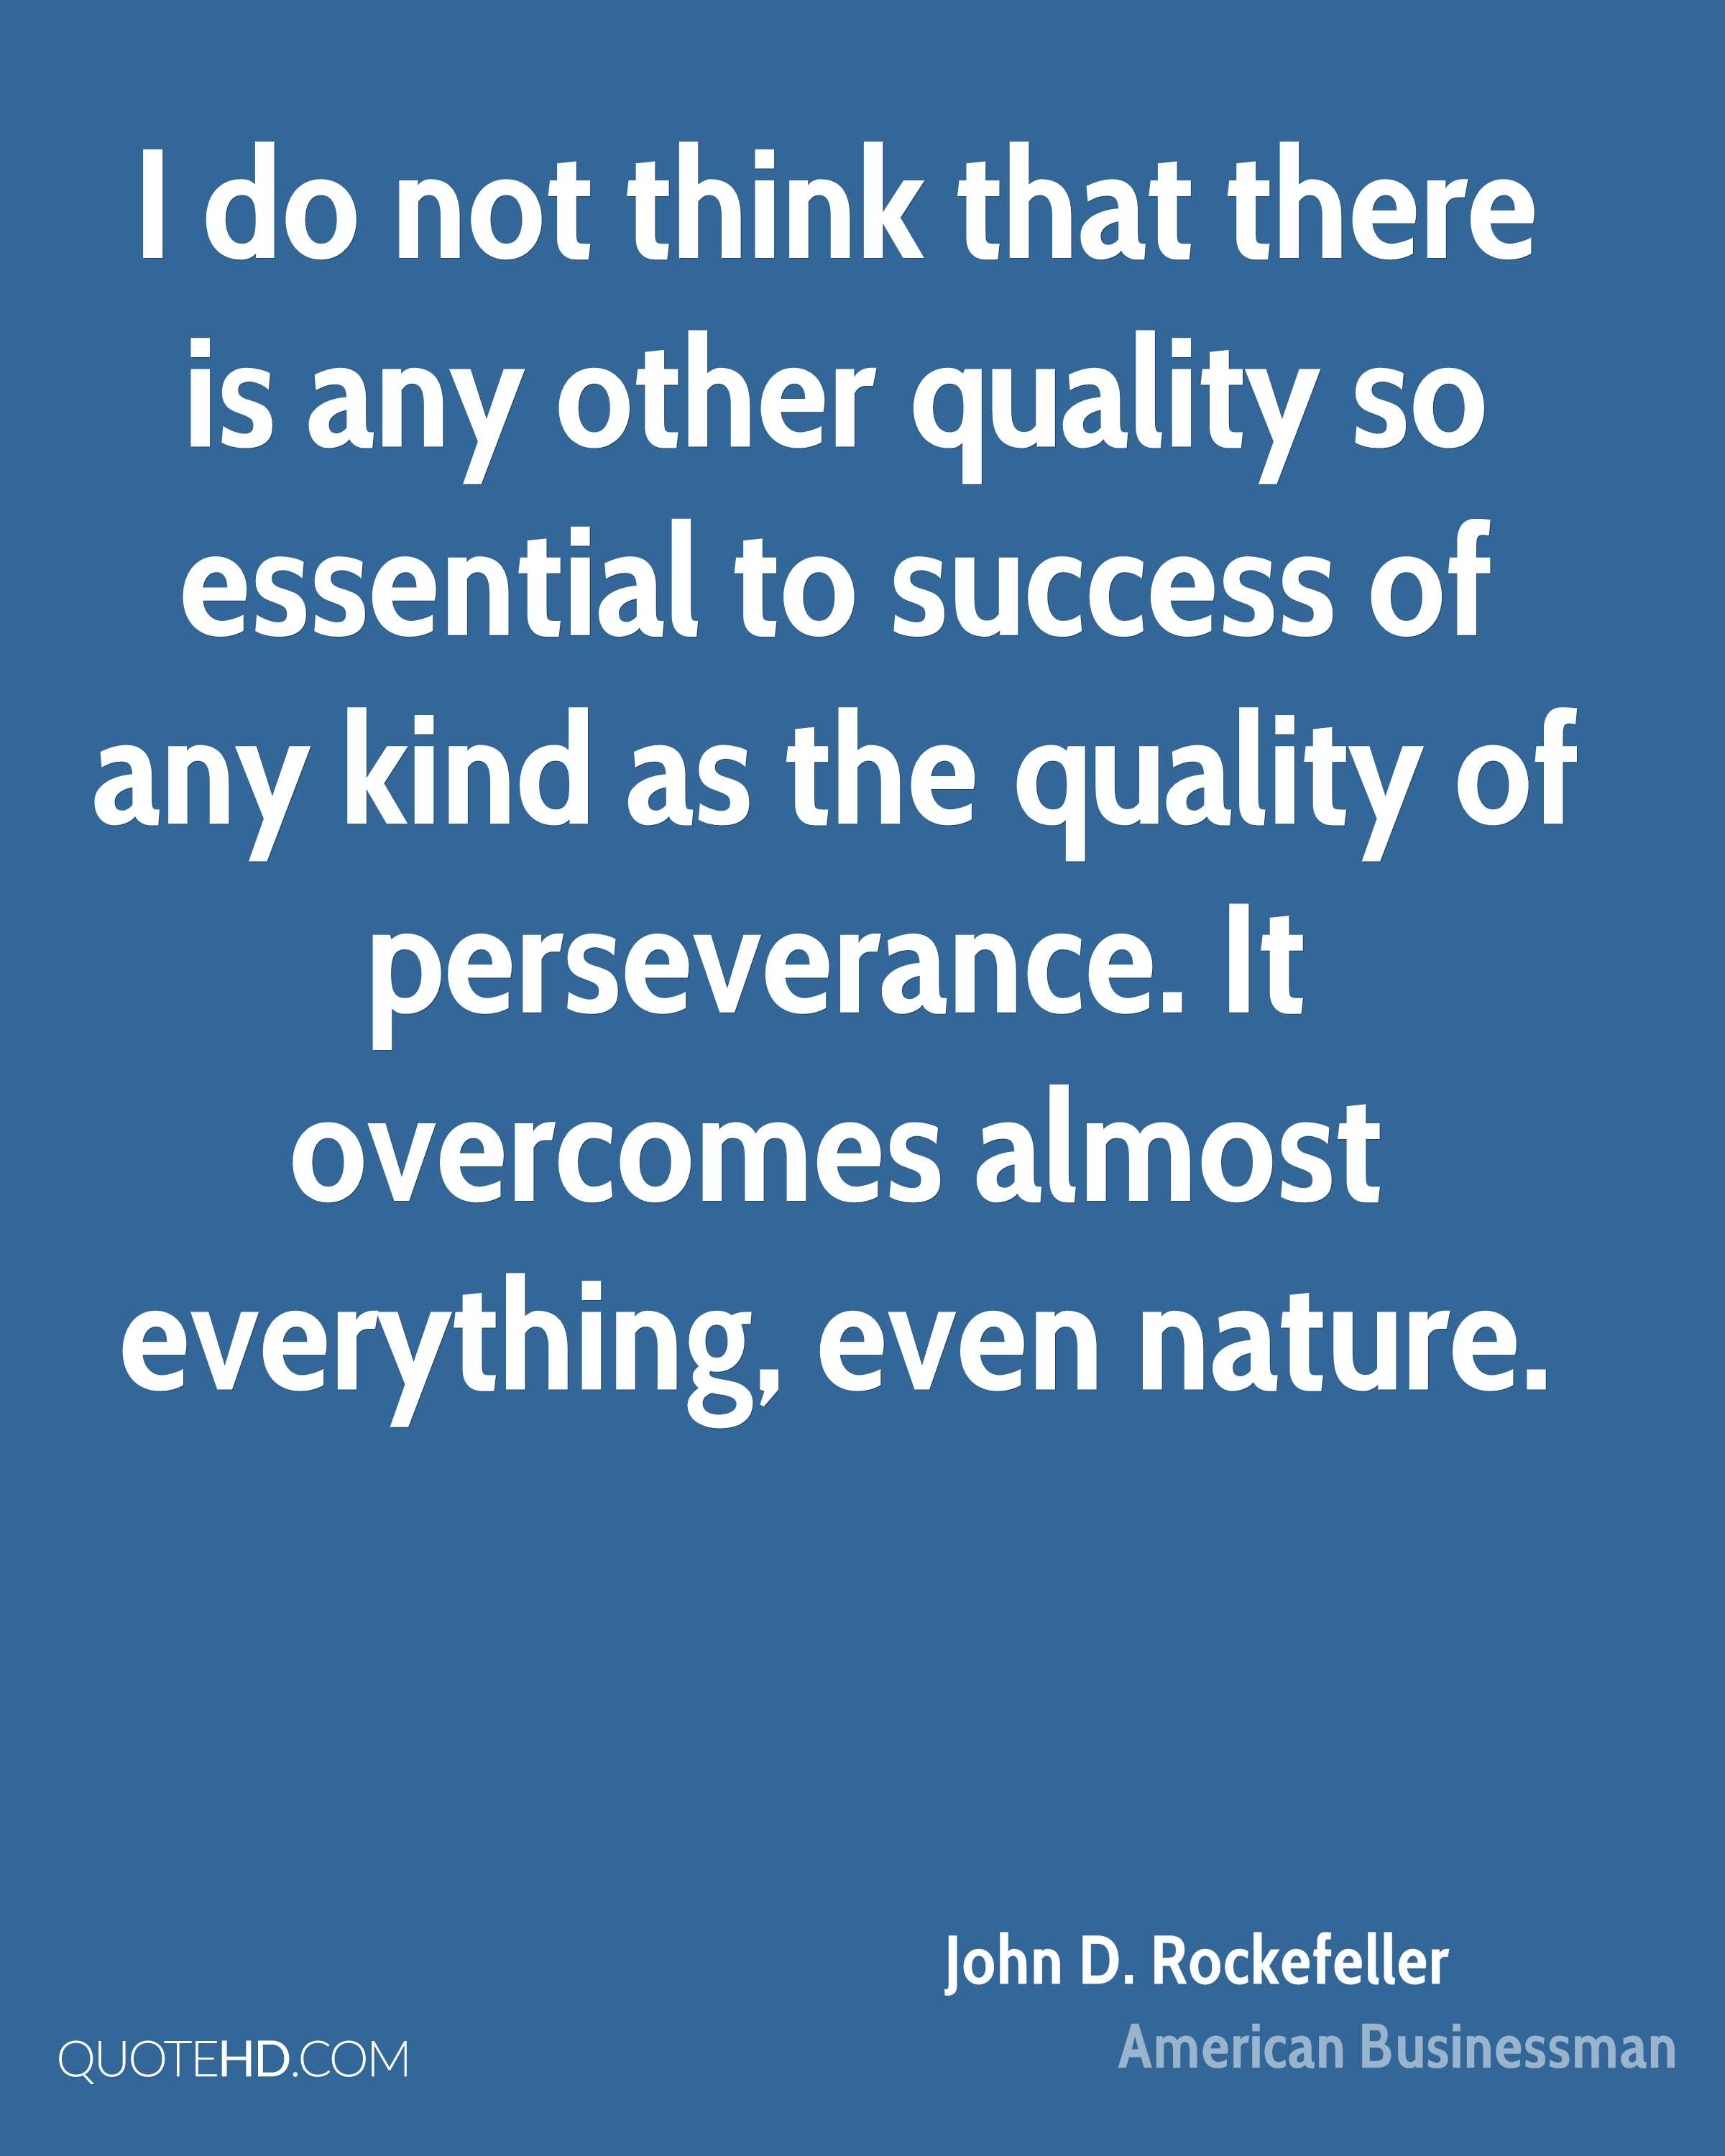 I do not think that there is any other quality so essential to success of any kind as the quality of perseverance. It overcomes almost everything, even nature.